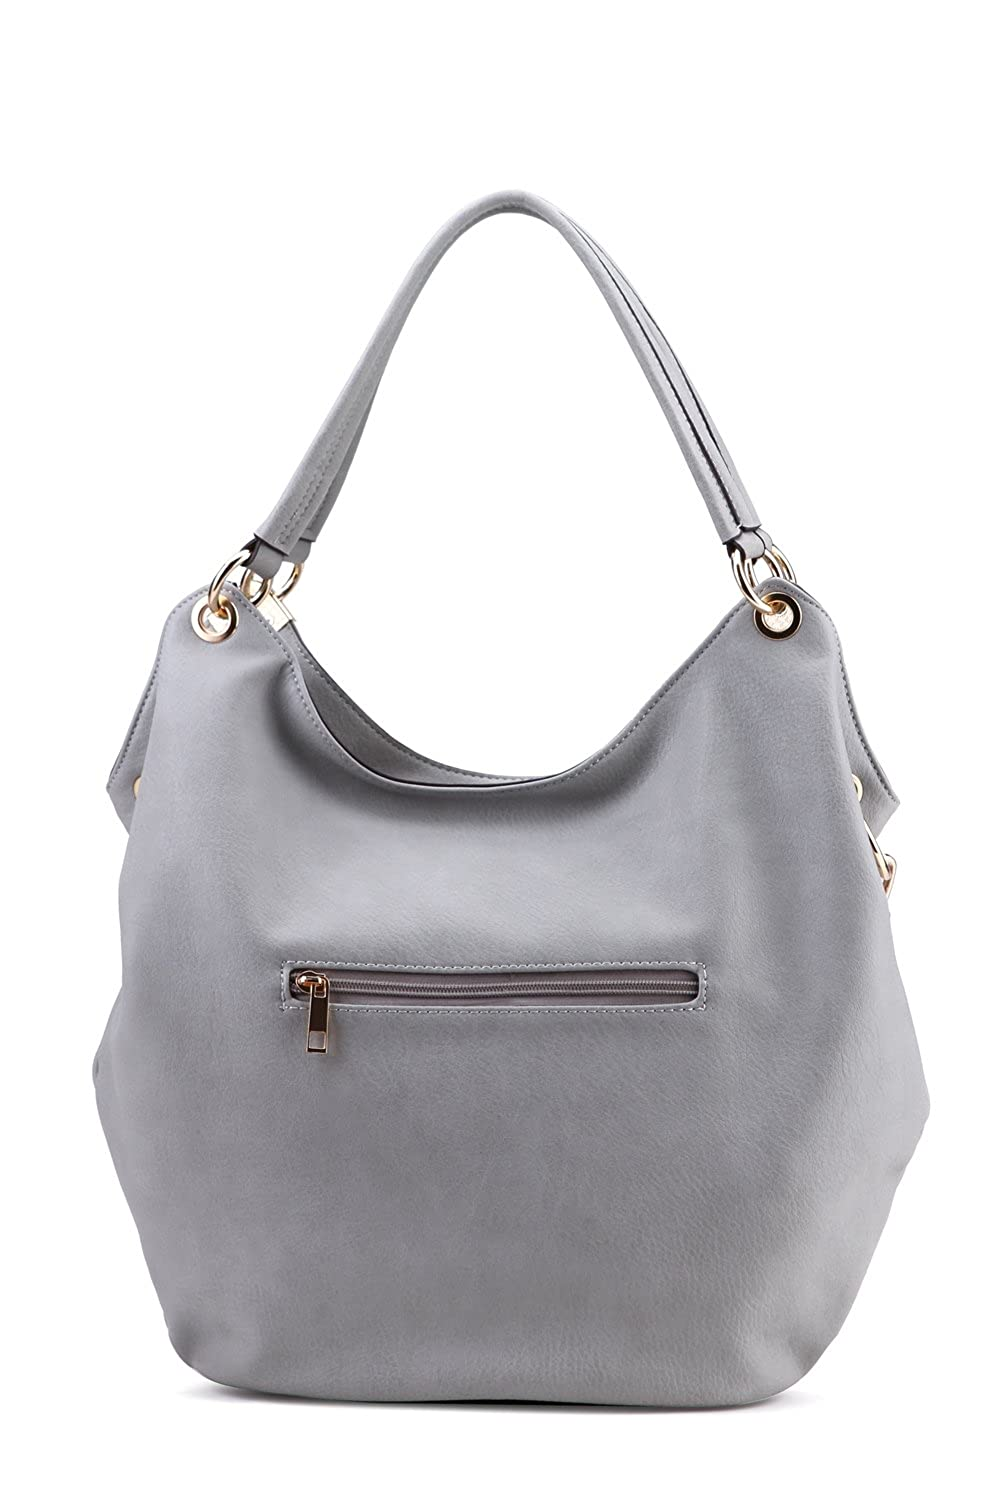 MKF Collection Beautiful Woman Designer Handbag, Hobo Bag, Glam-Gal fashion Designer purse